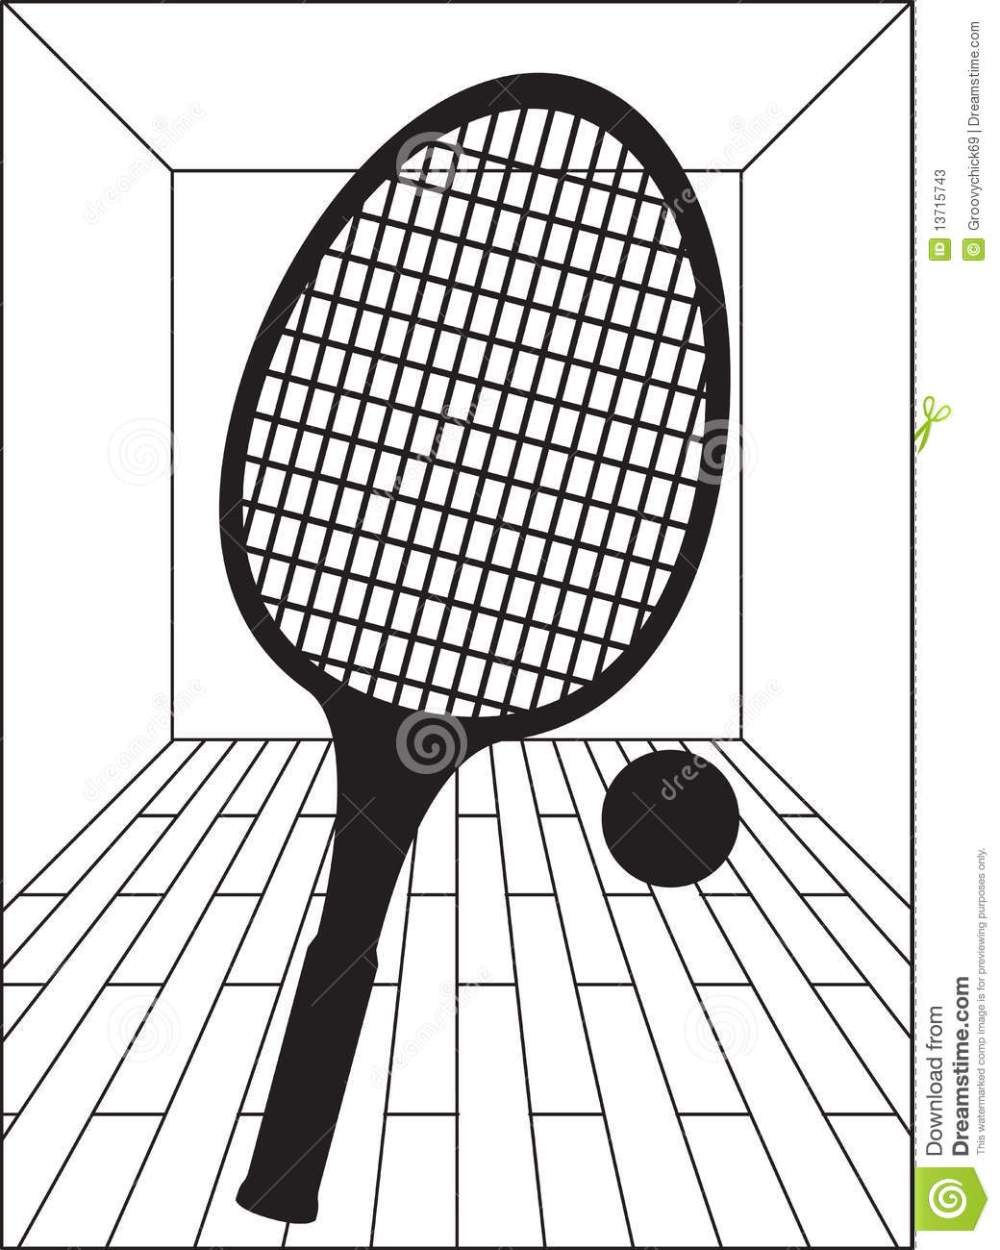 medium resolution of racquetball court stock illustrations 25 racquetball court stock illustrations vectors clipart dreamstime